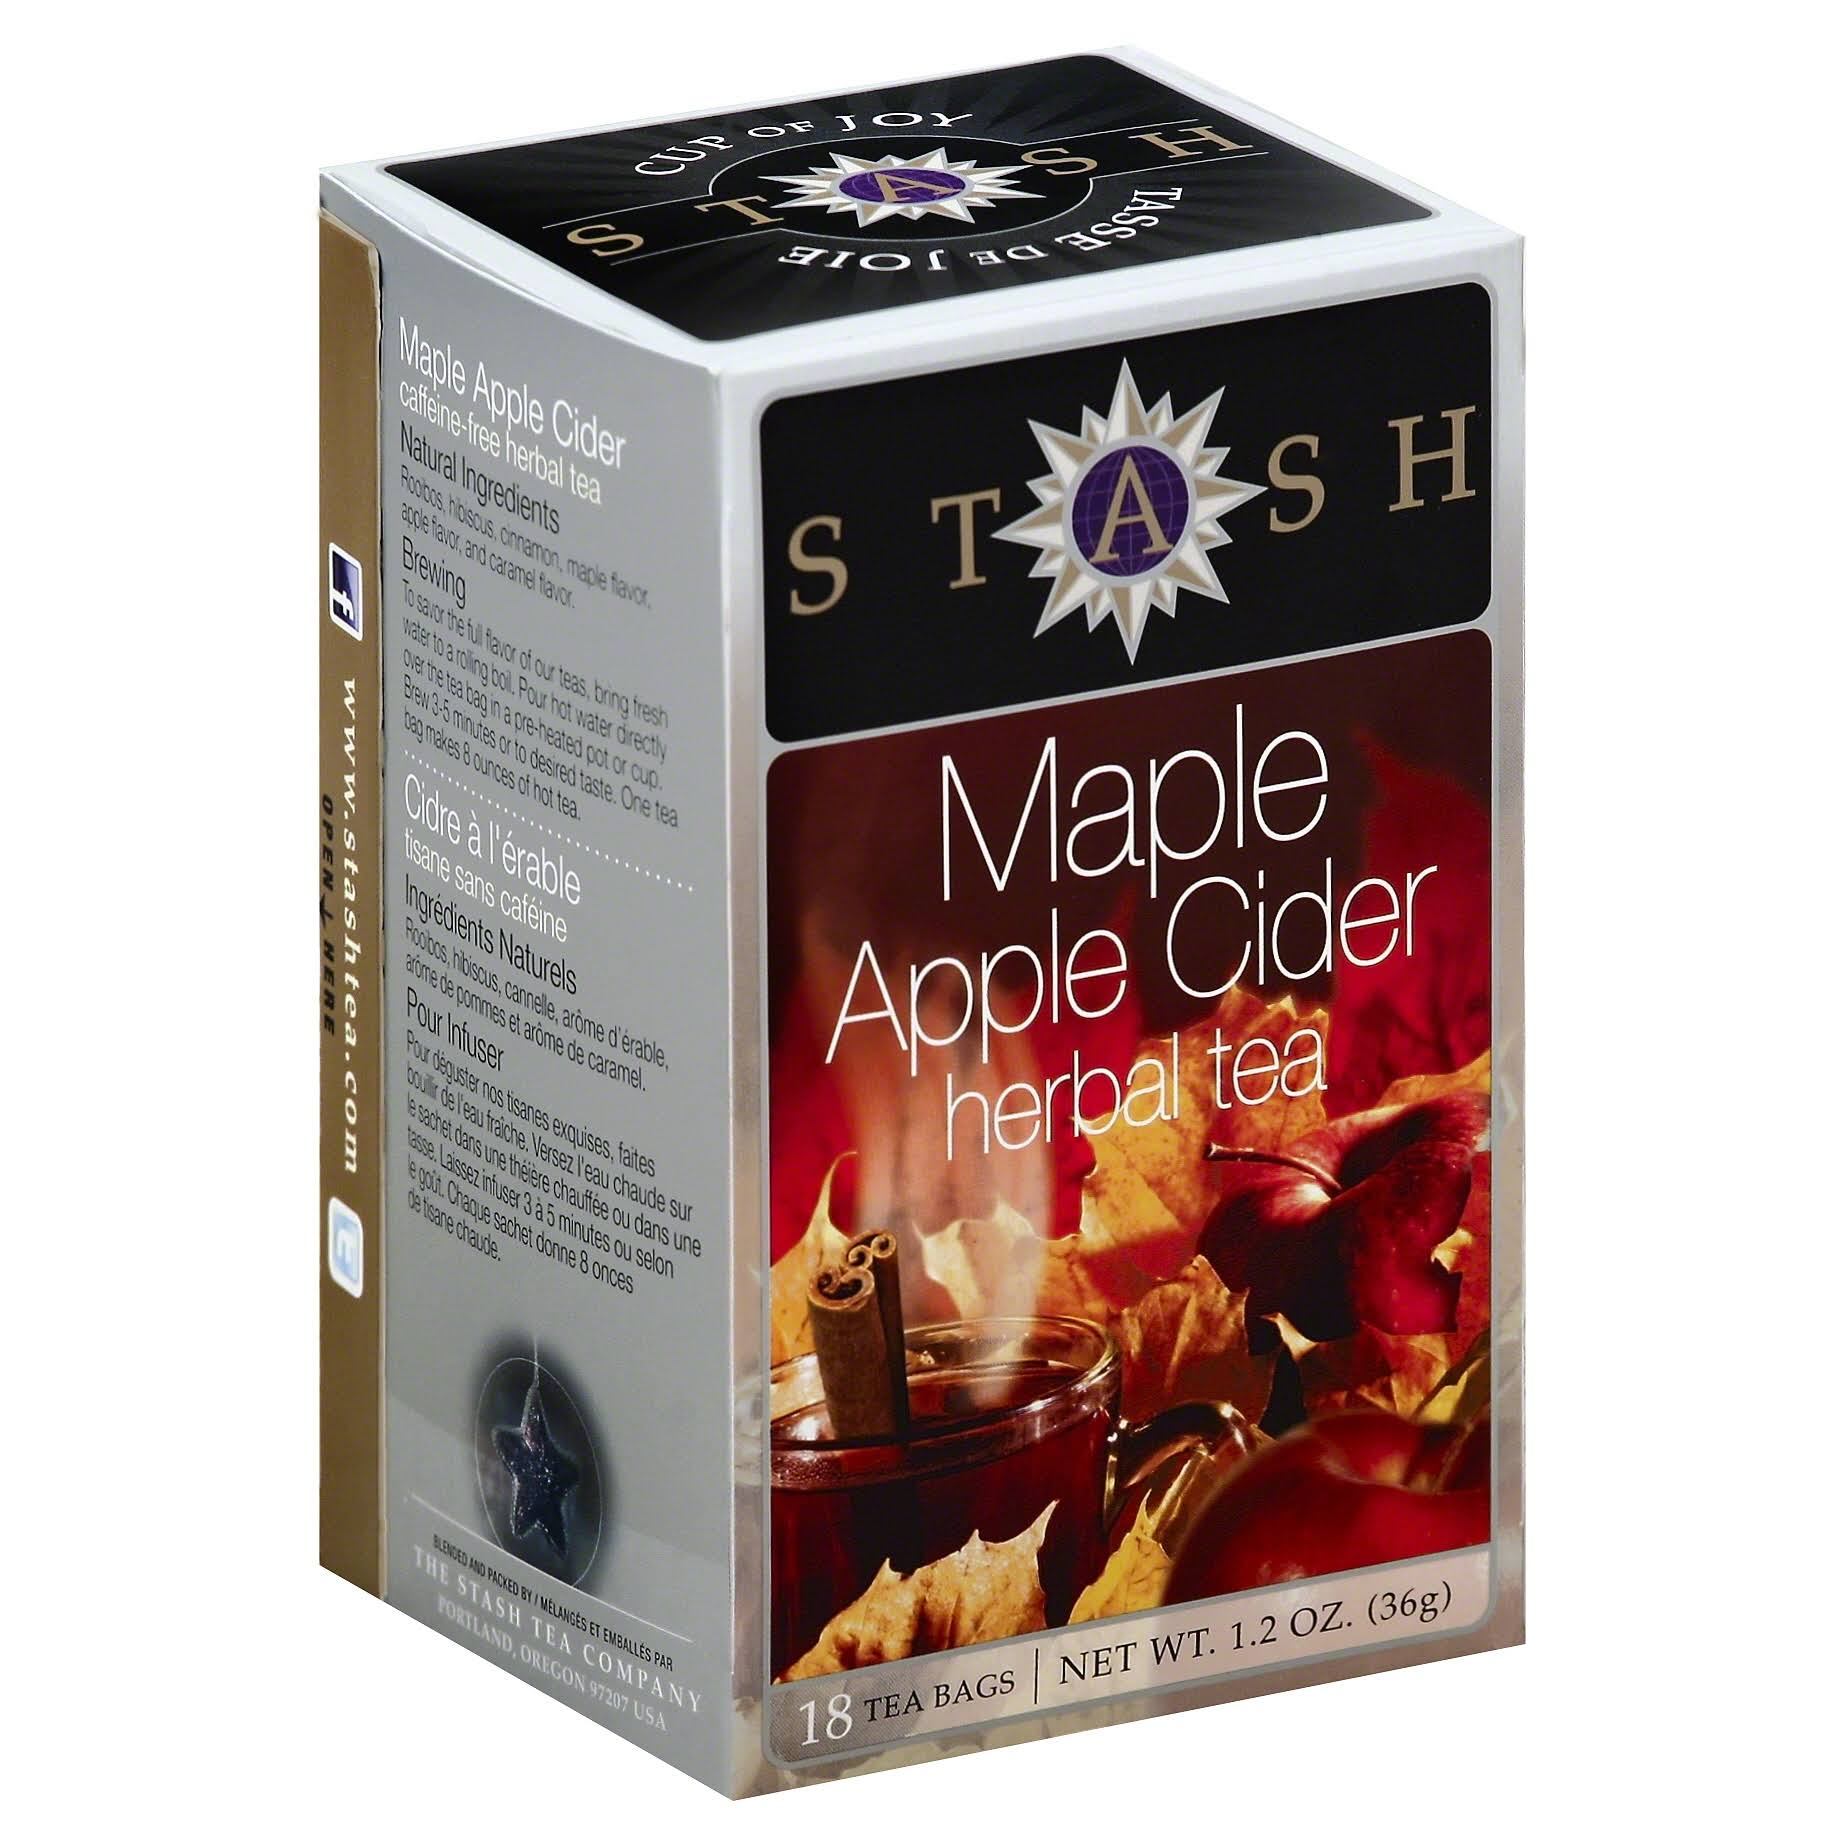 Stash Herbal Tea, Maple Apple Cider - 18 tea bags, 1.2 oz